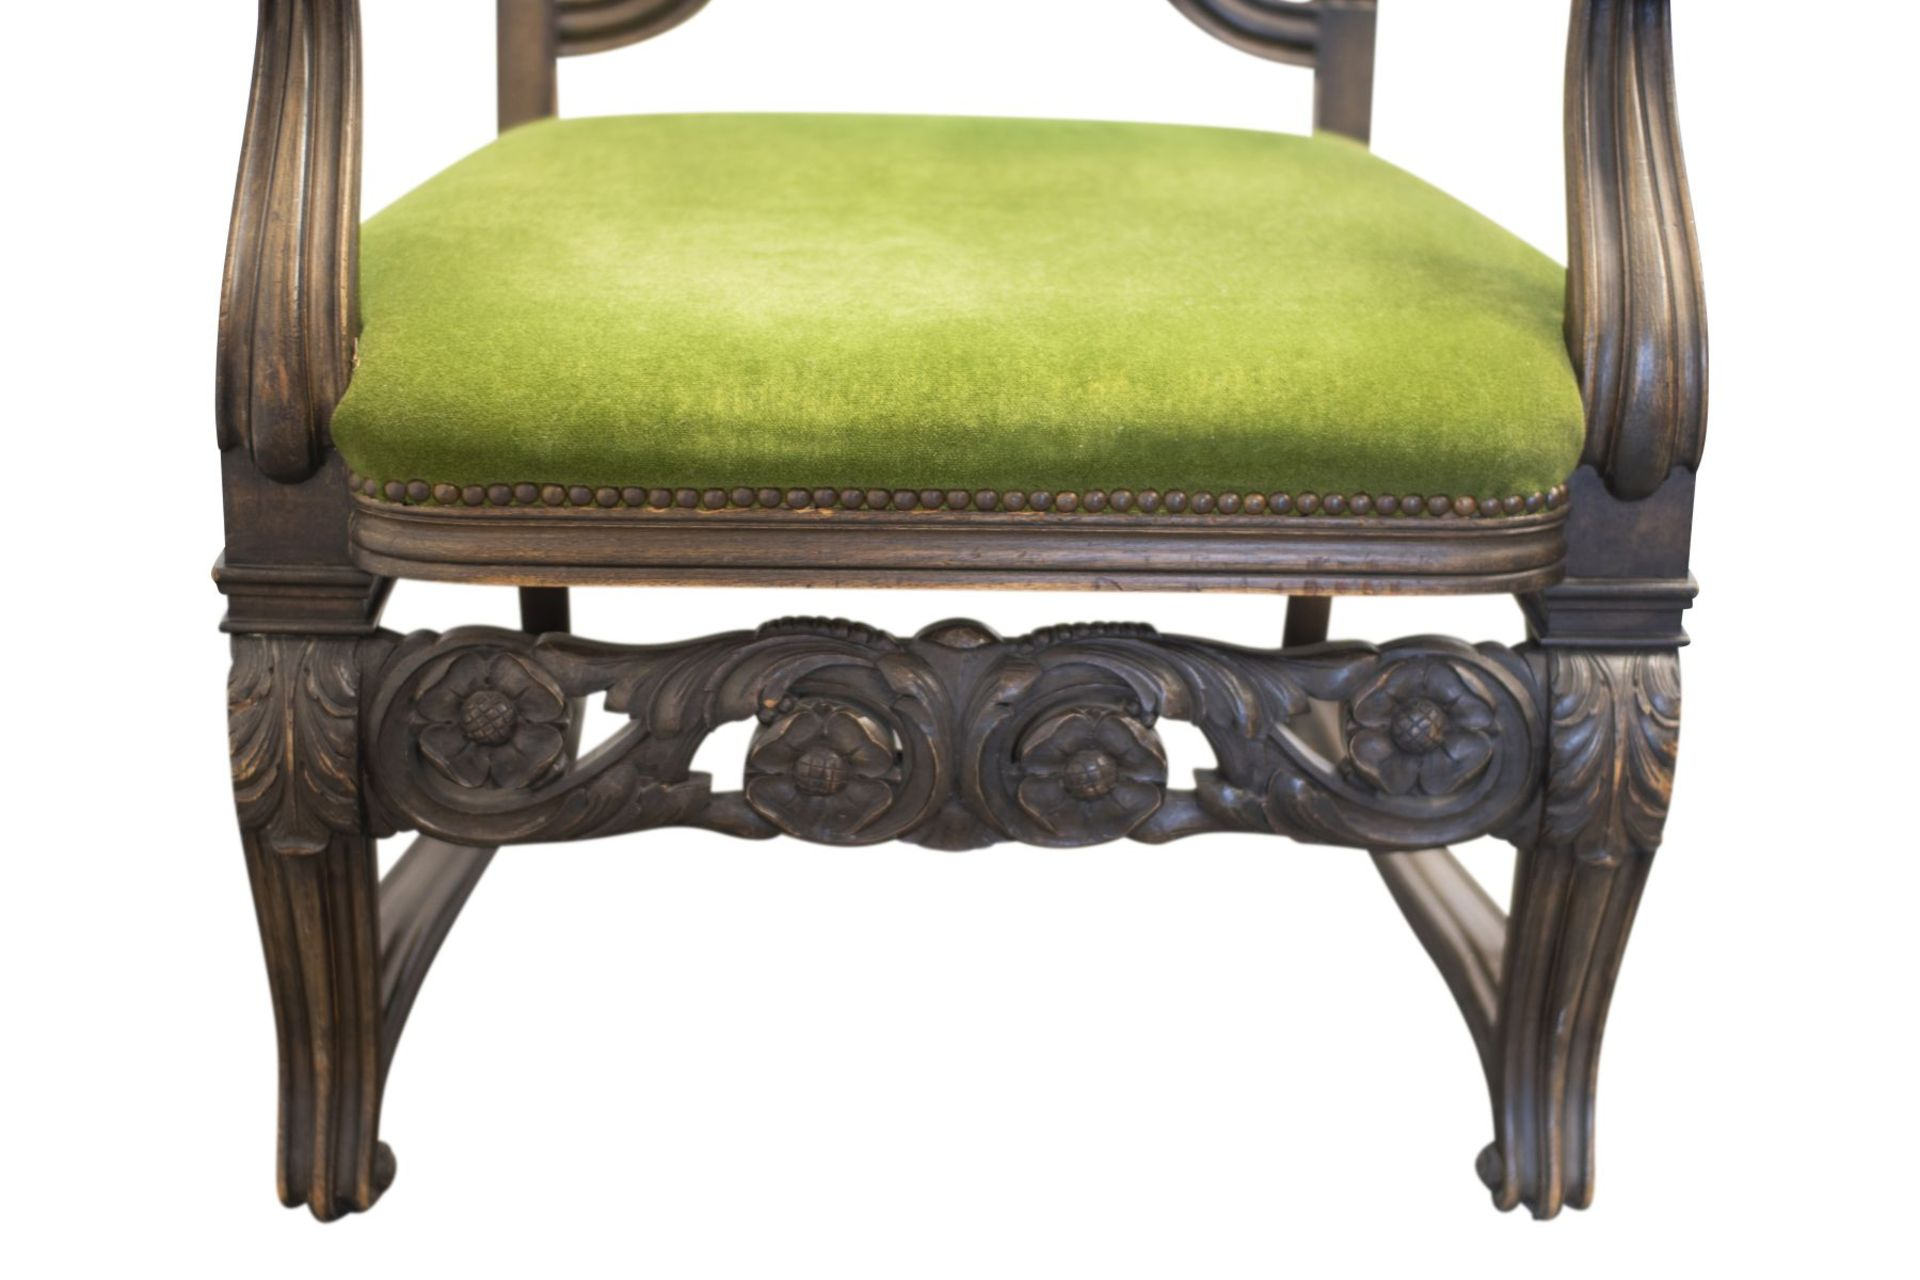 Armchair with carved backrest - Image 4 of 5